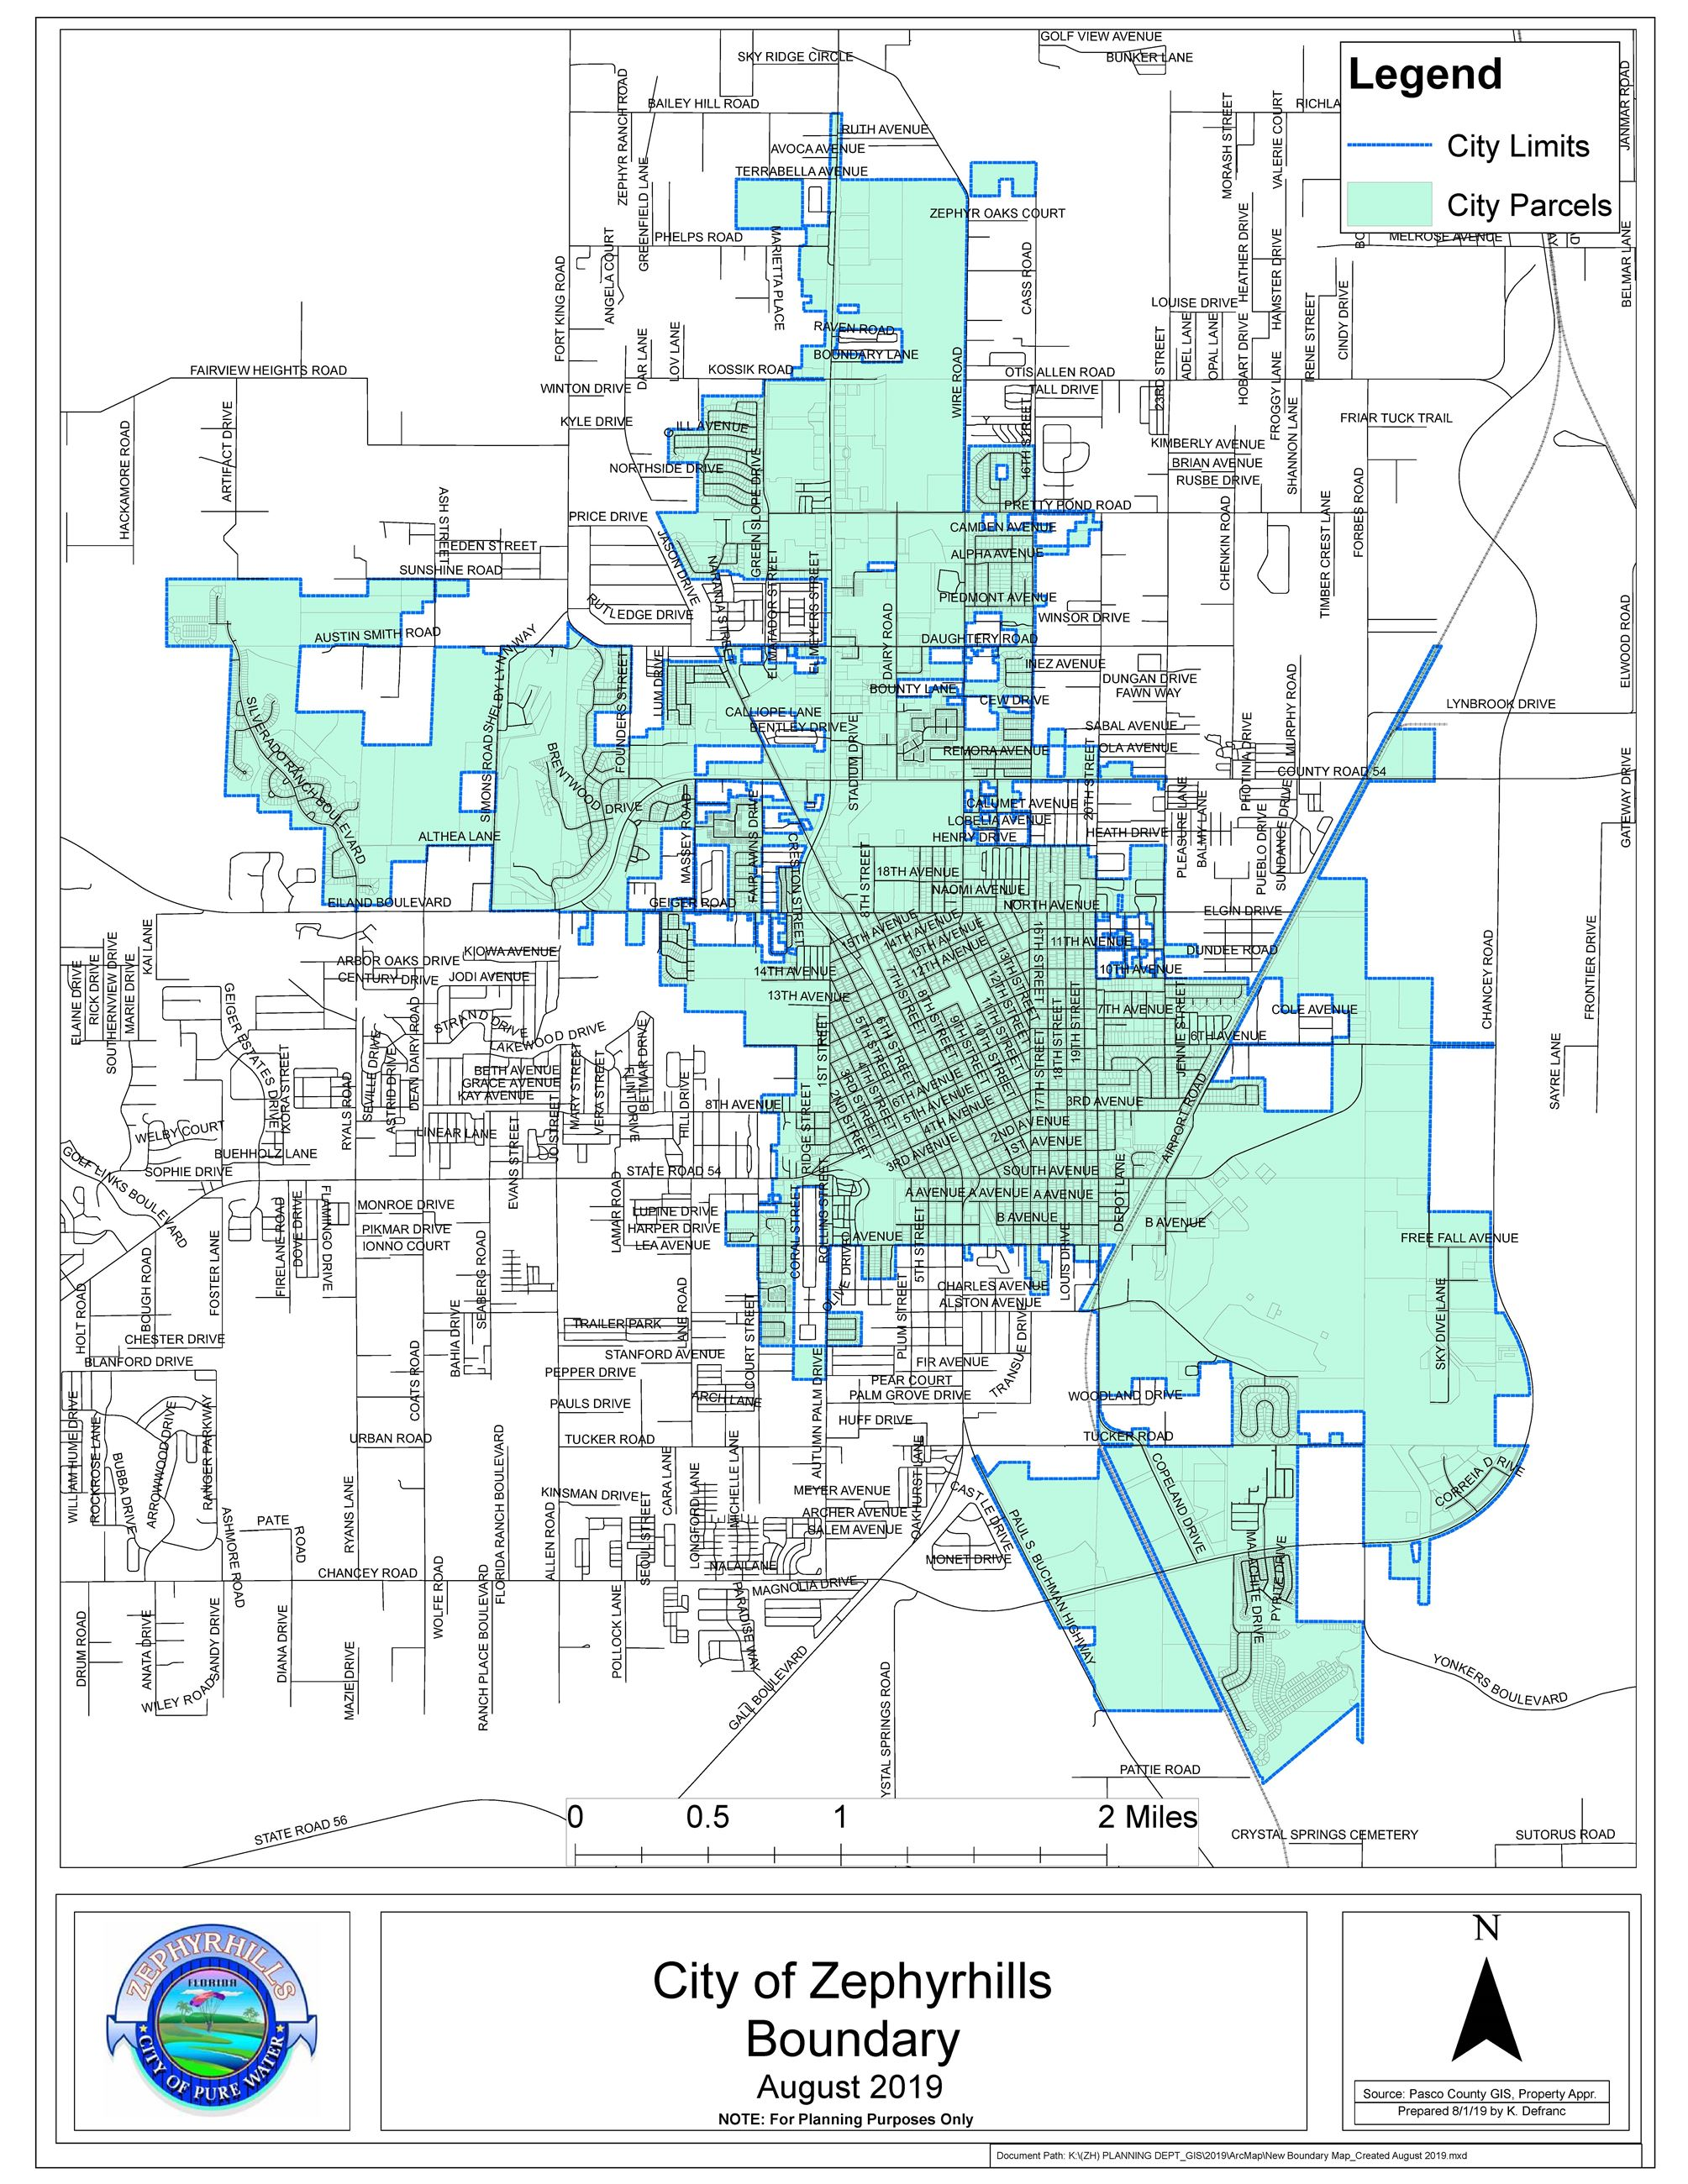 City of Zephyrhills City Limits New Boundary Map Created August 2019